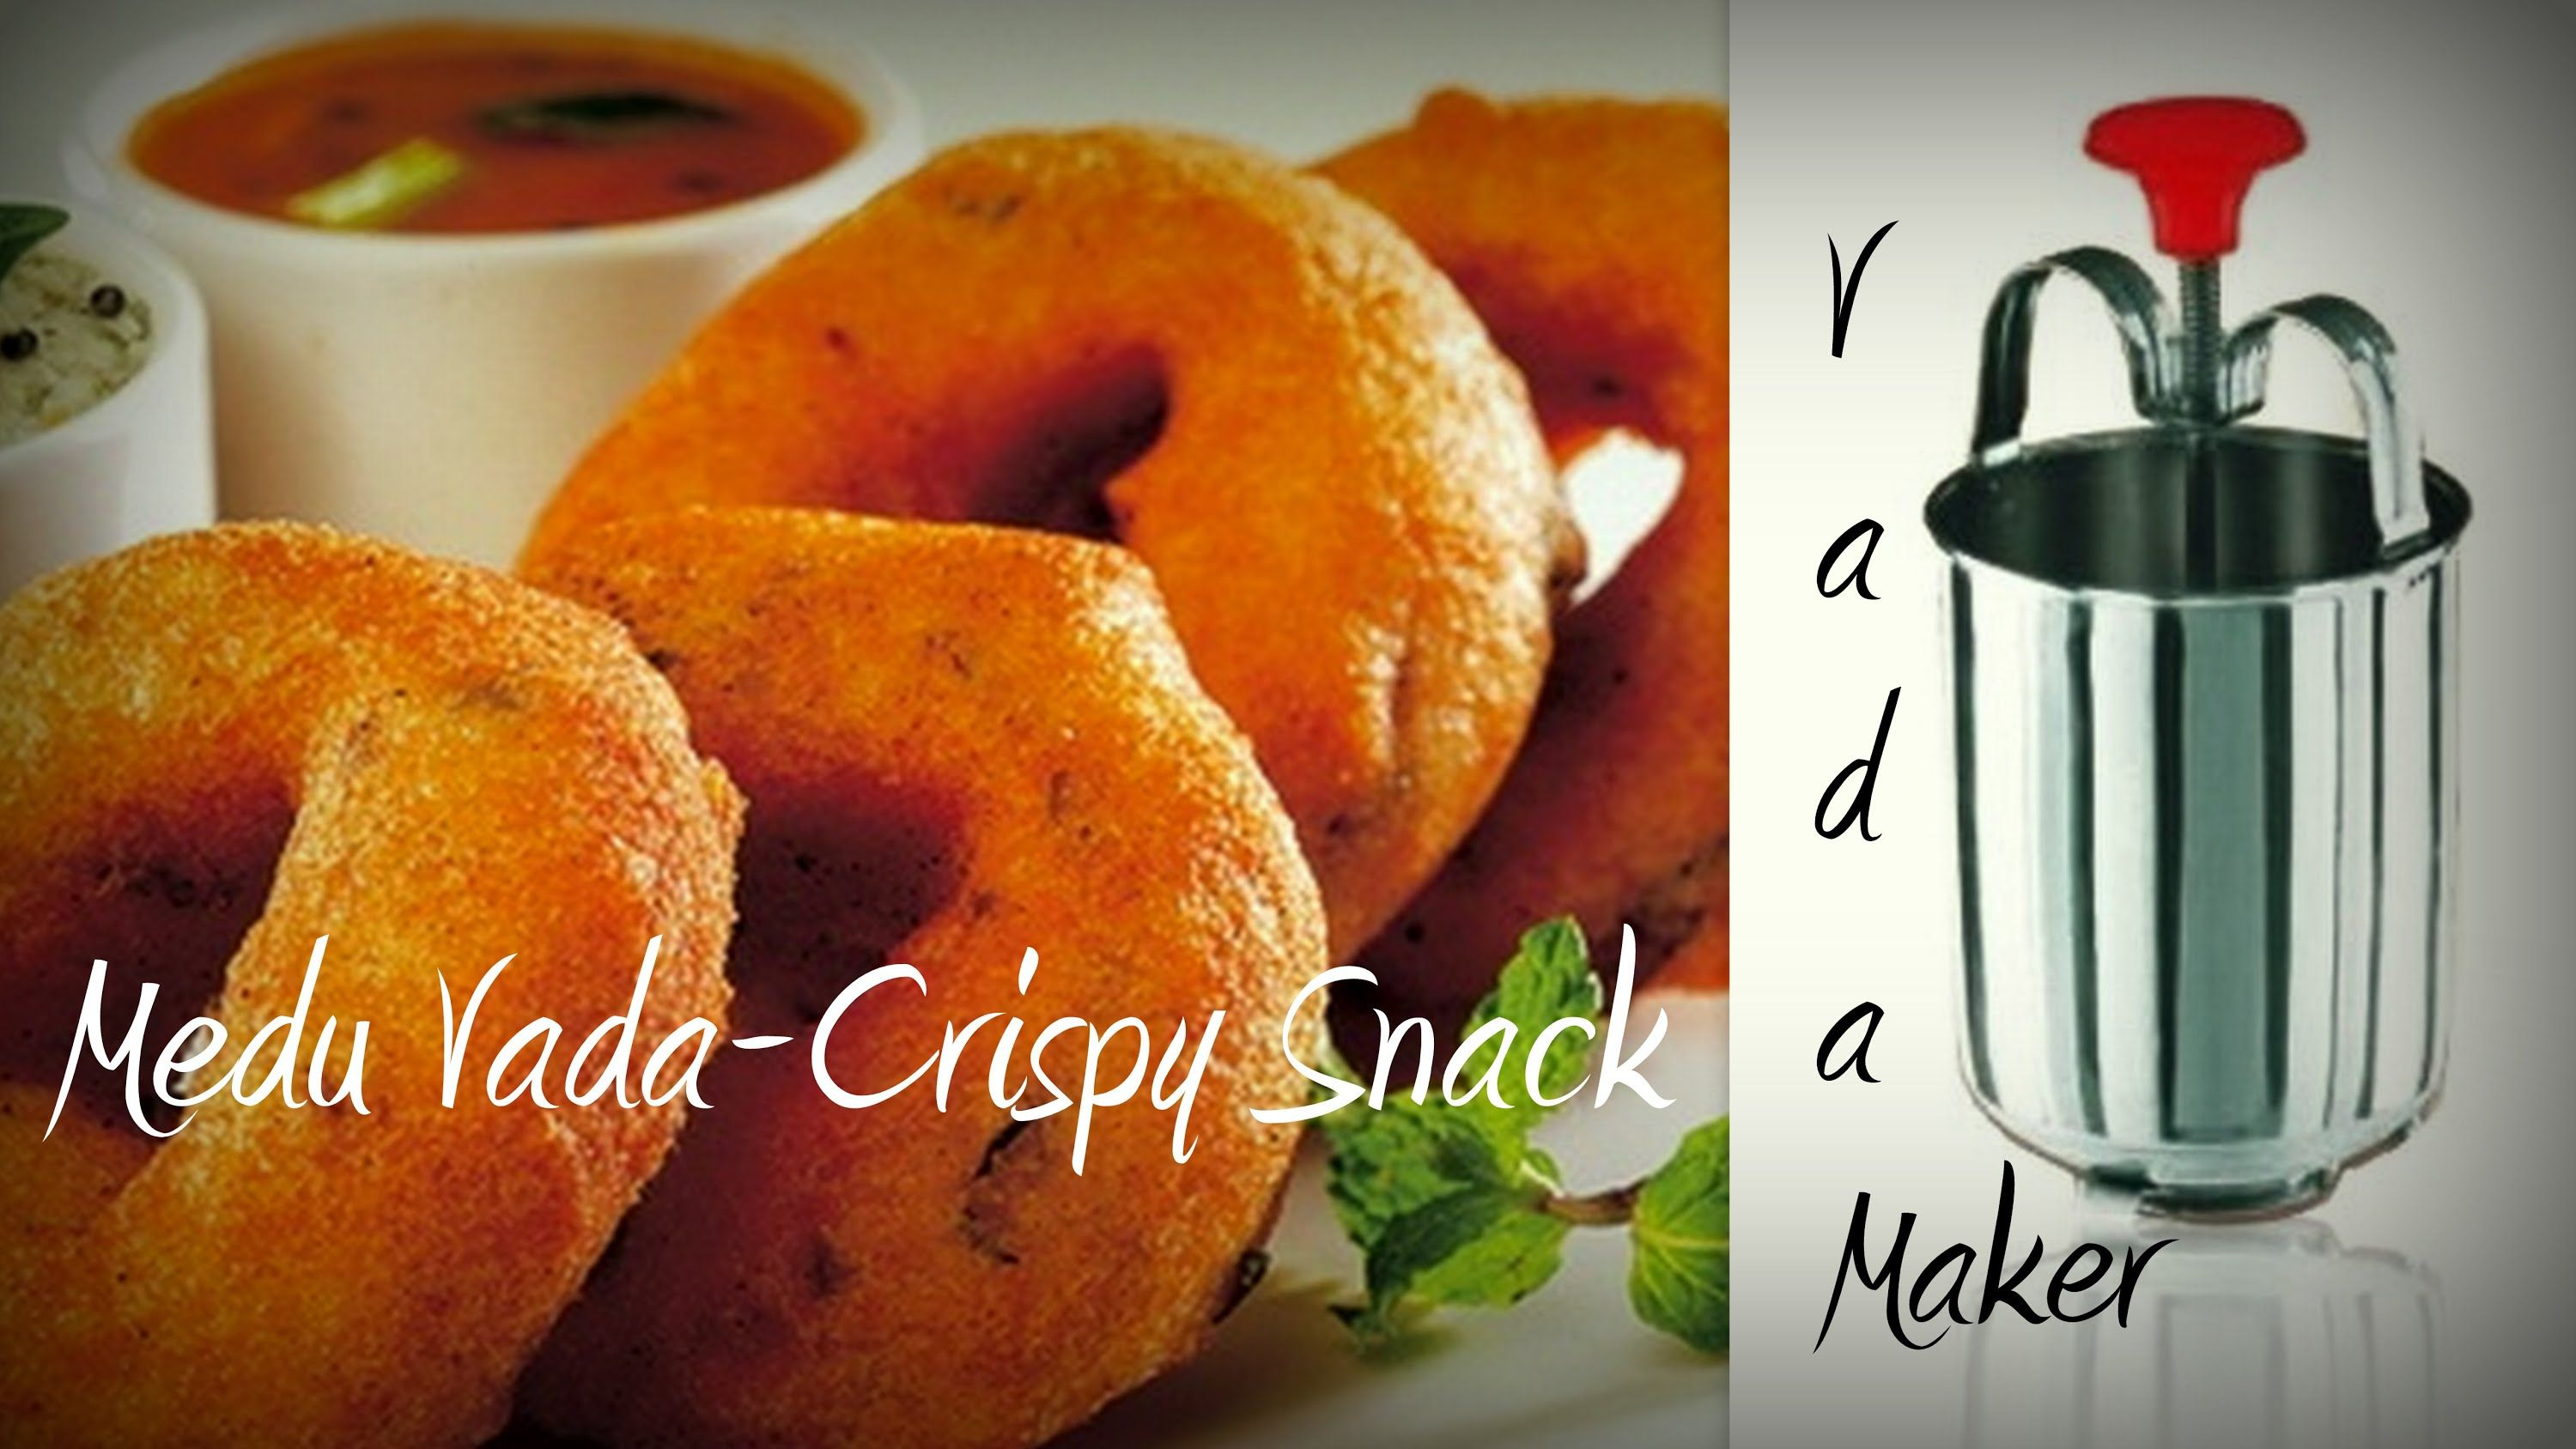 Medu vada hindi video medu wada sambhar recipe medu vada video medu vada hindi video medu wada sambhar recipe medu vada video forumfinder Image collections